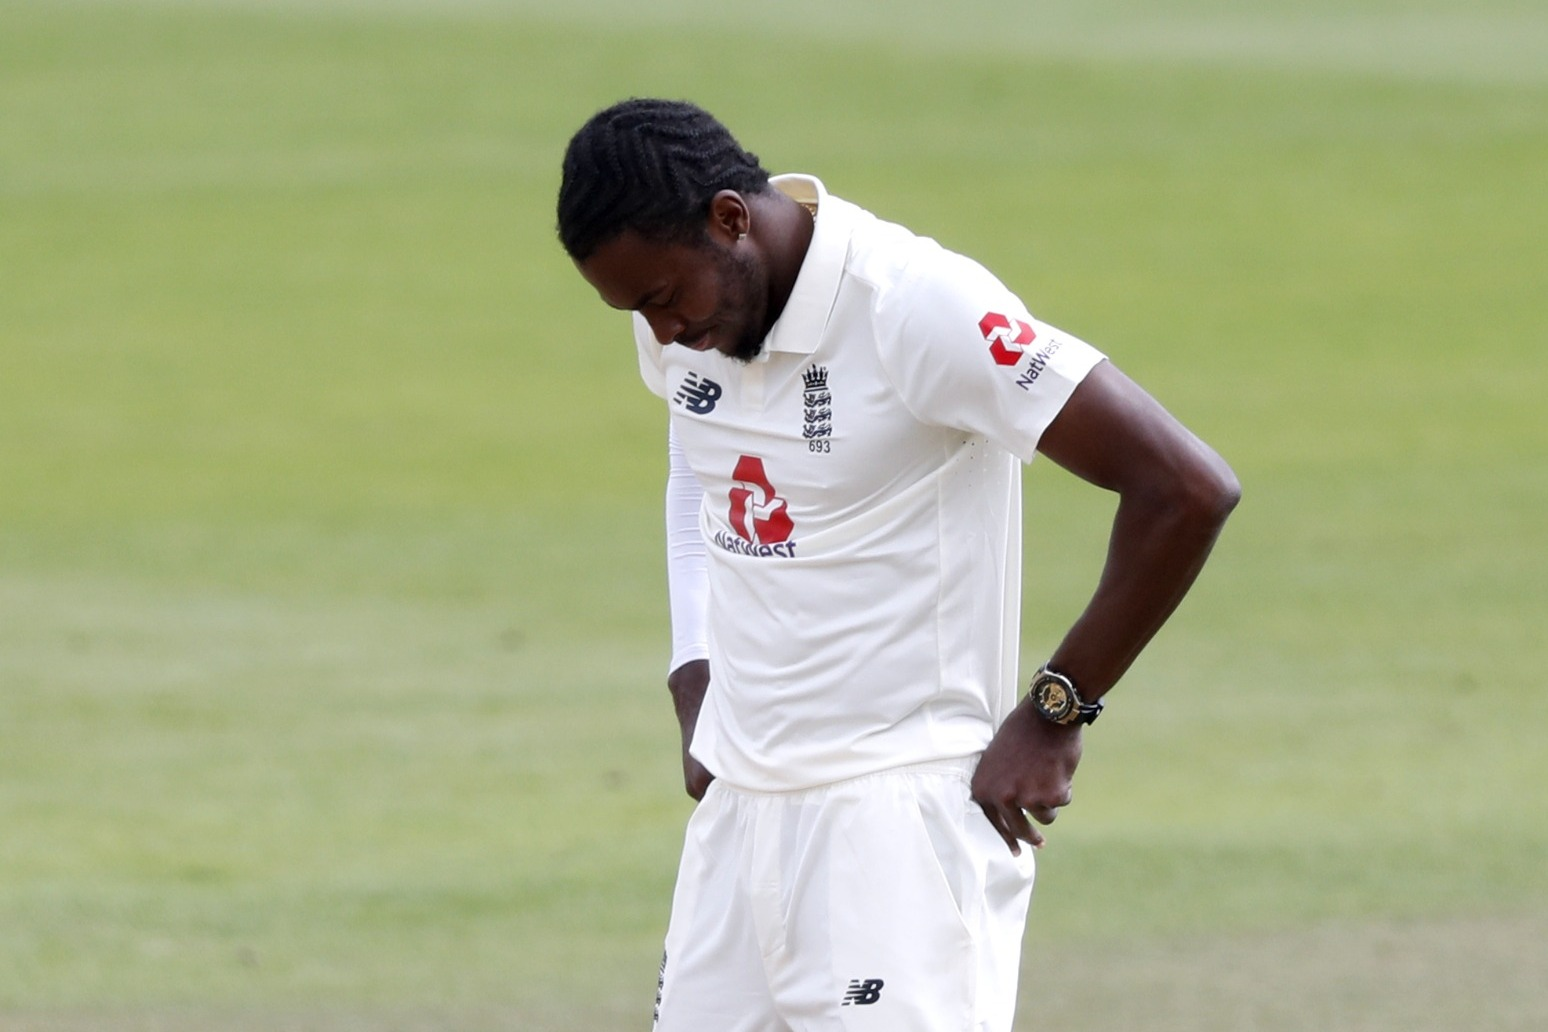 Jofra Archer ruled out of Ashes and Twenty20 World Cup